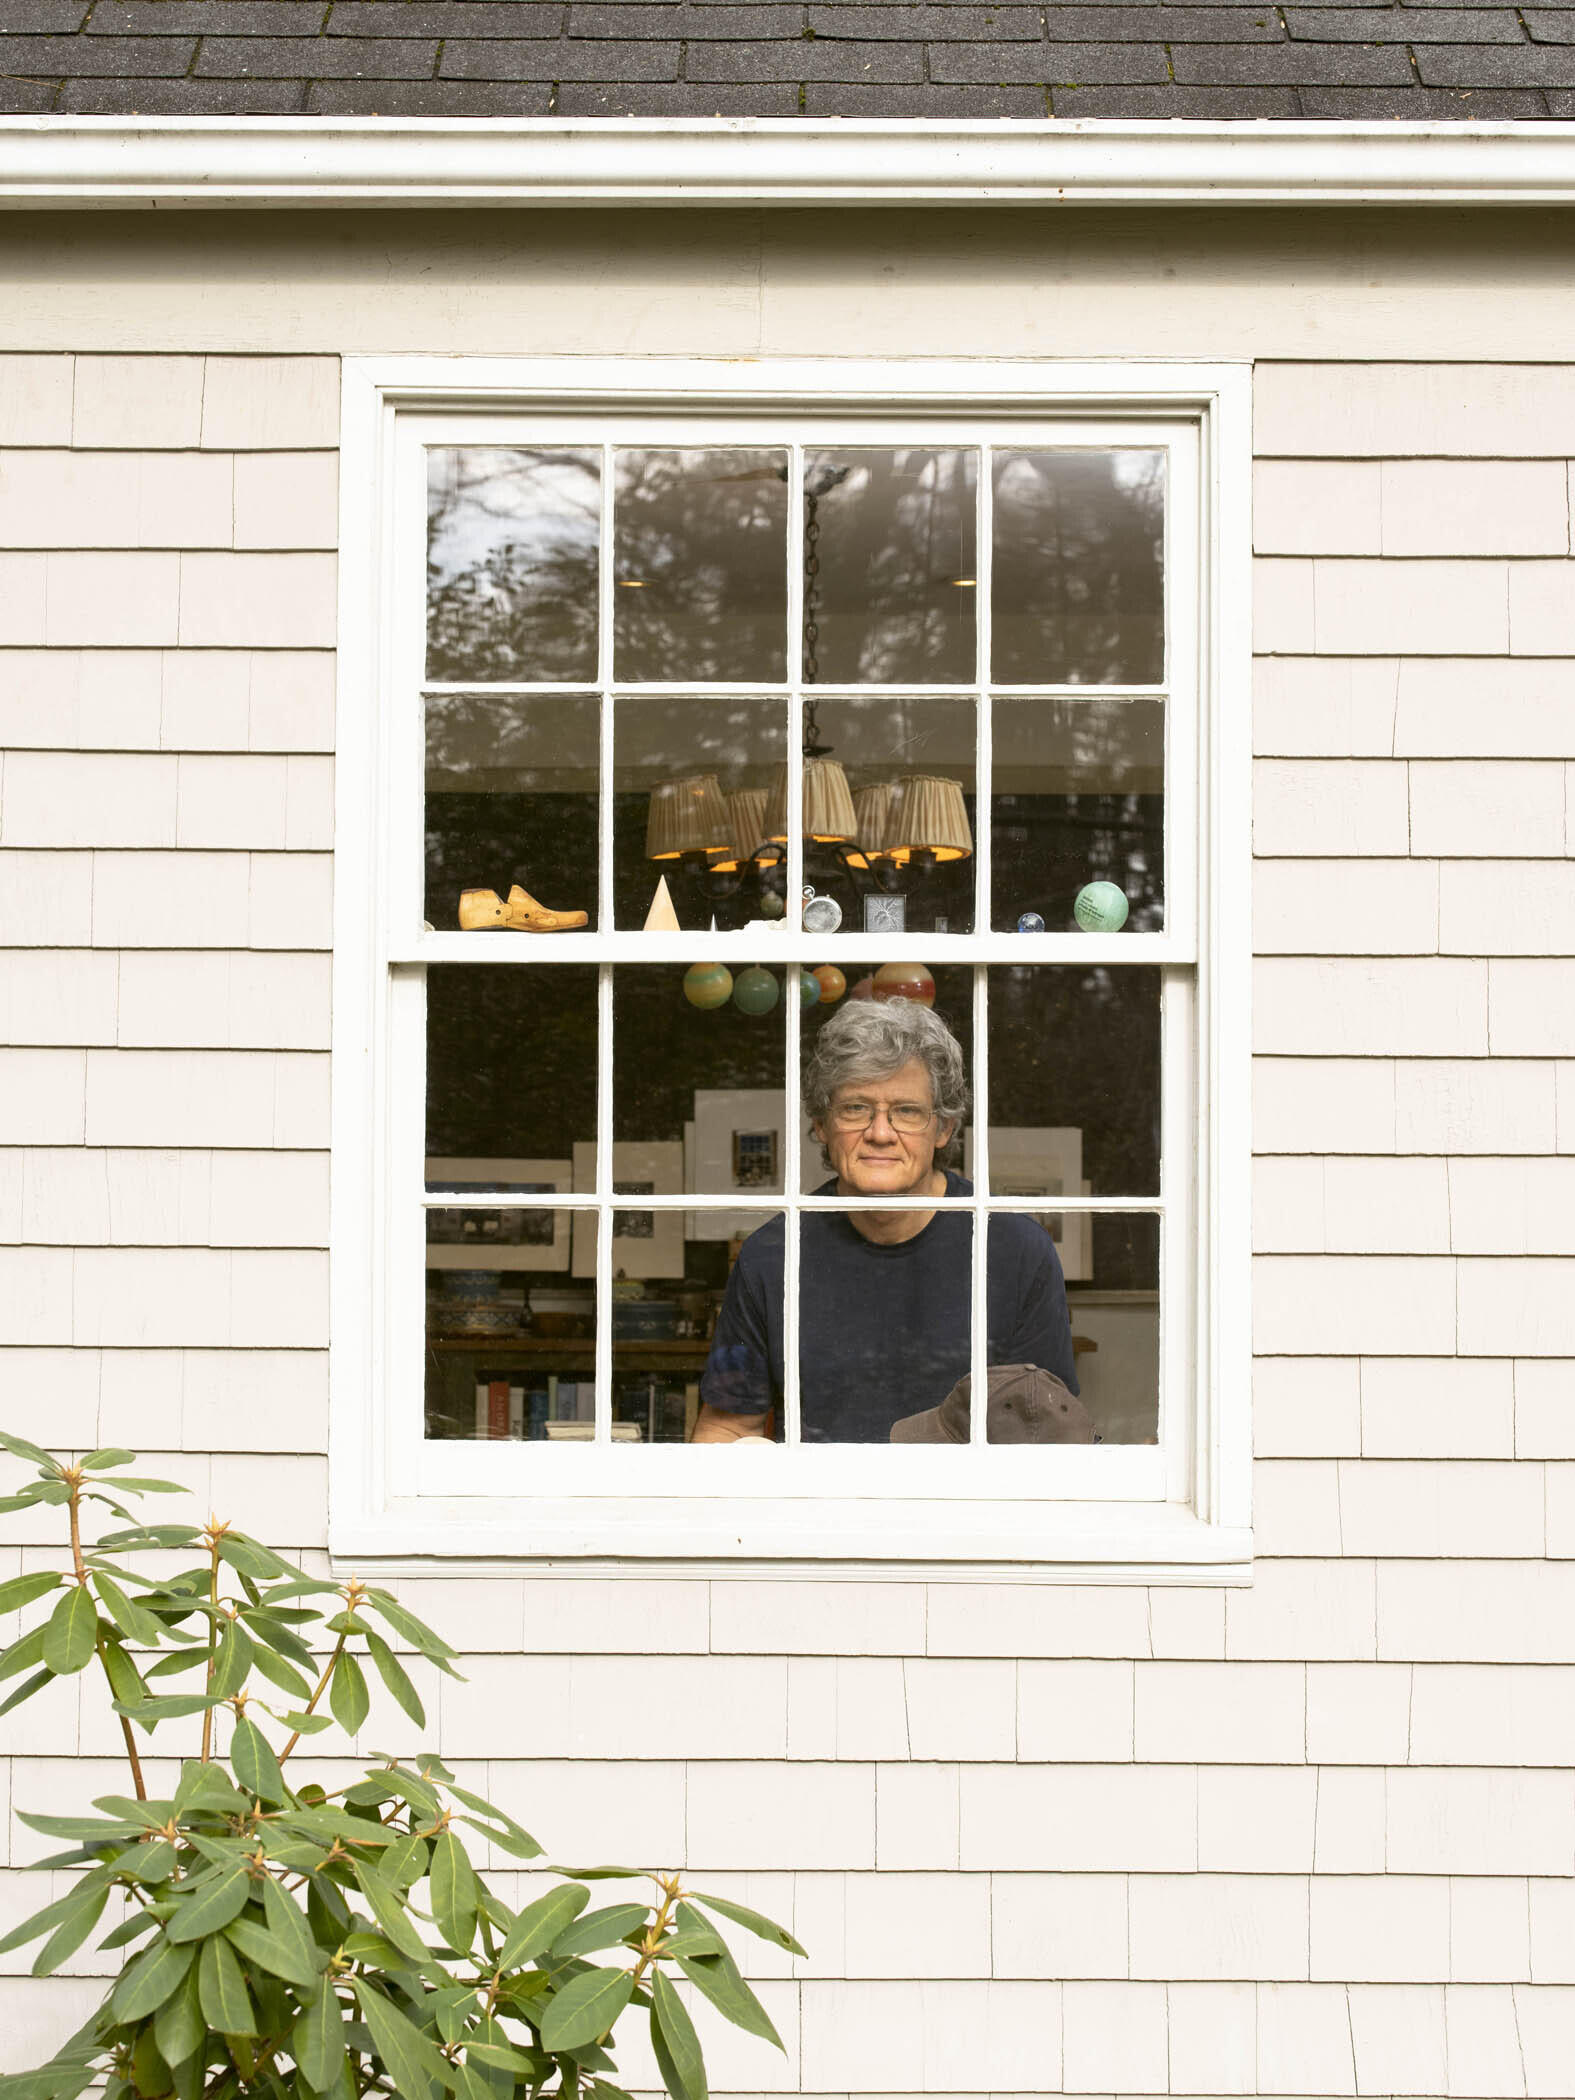 Photograph of the Artist at His Studio Window, 2020 image